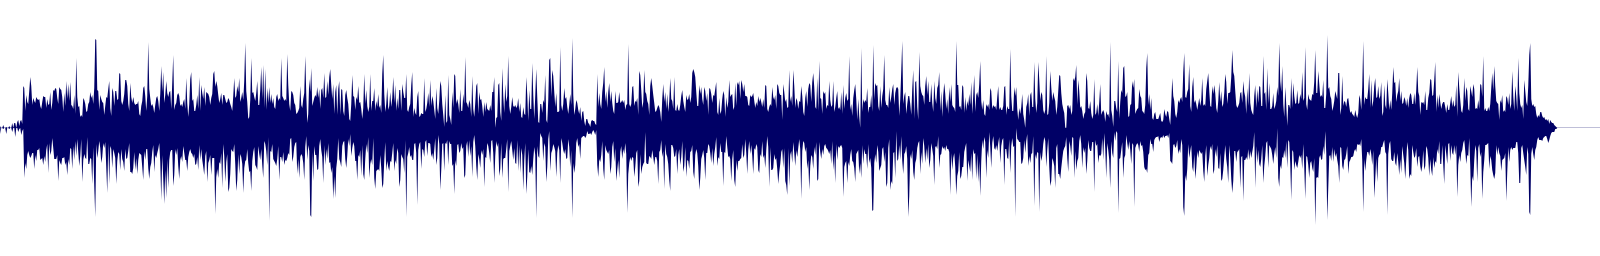 waveform of track #145390